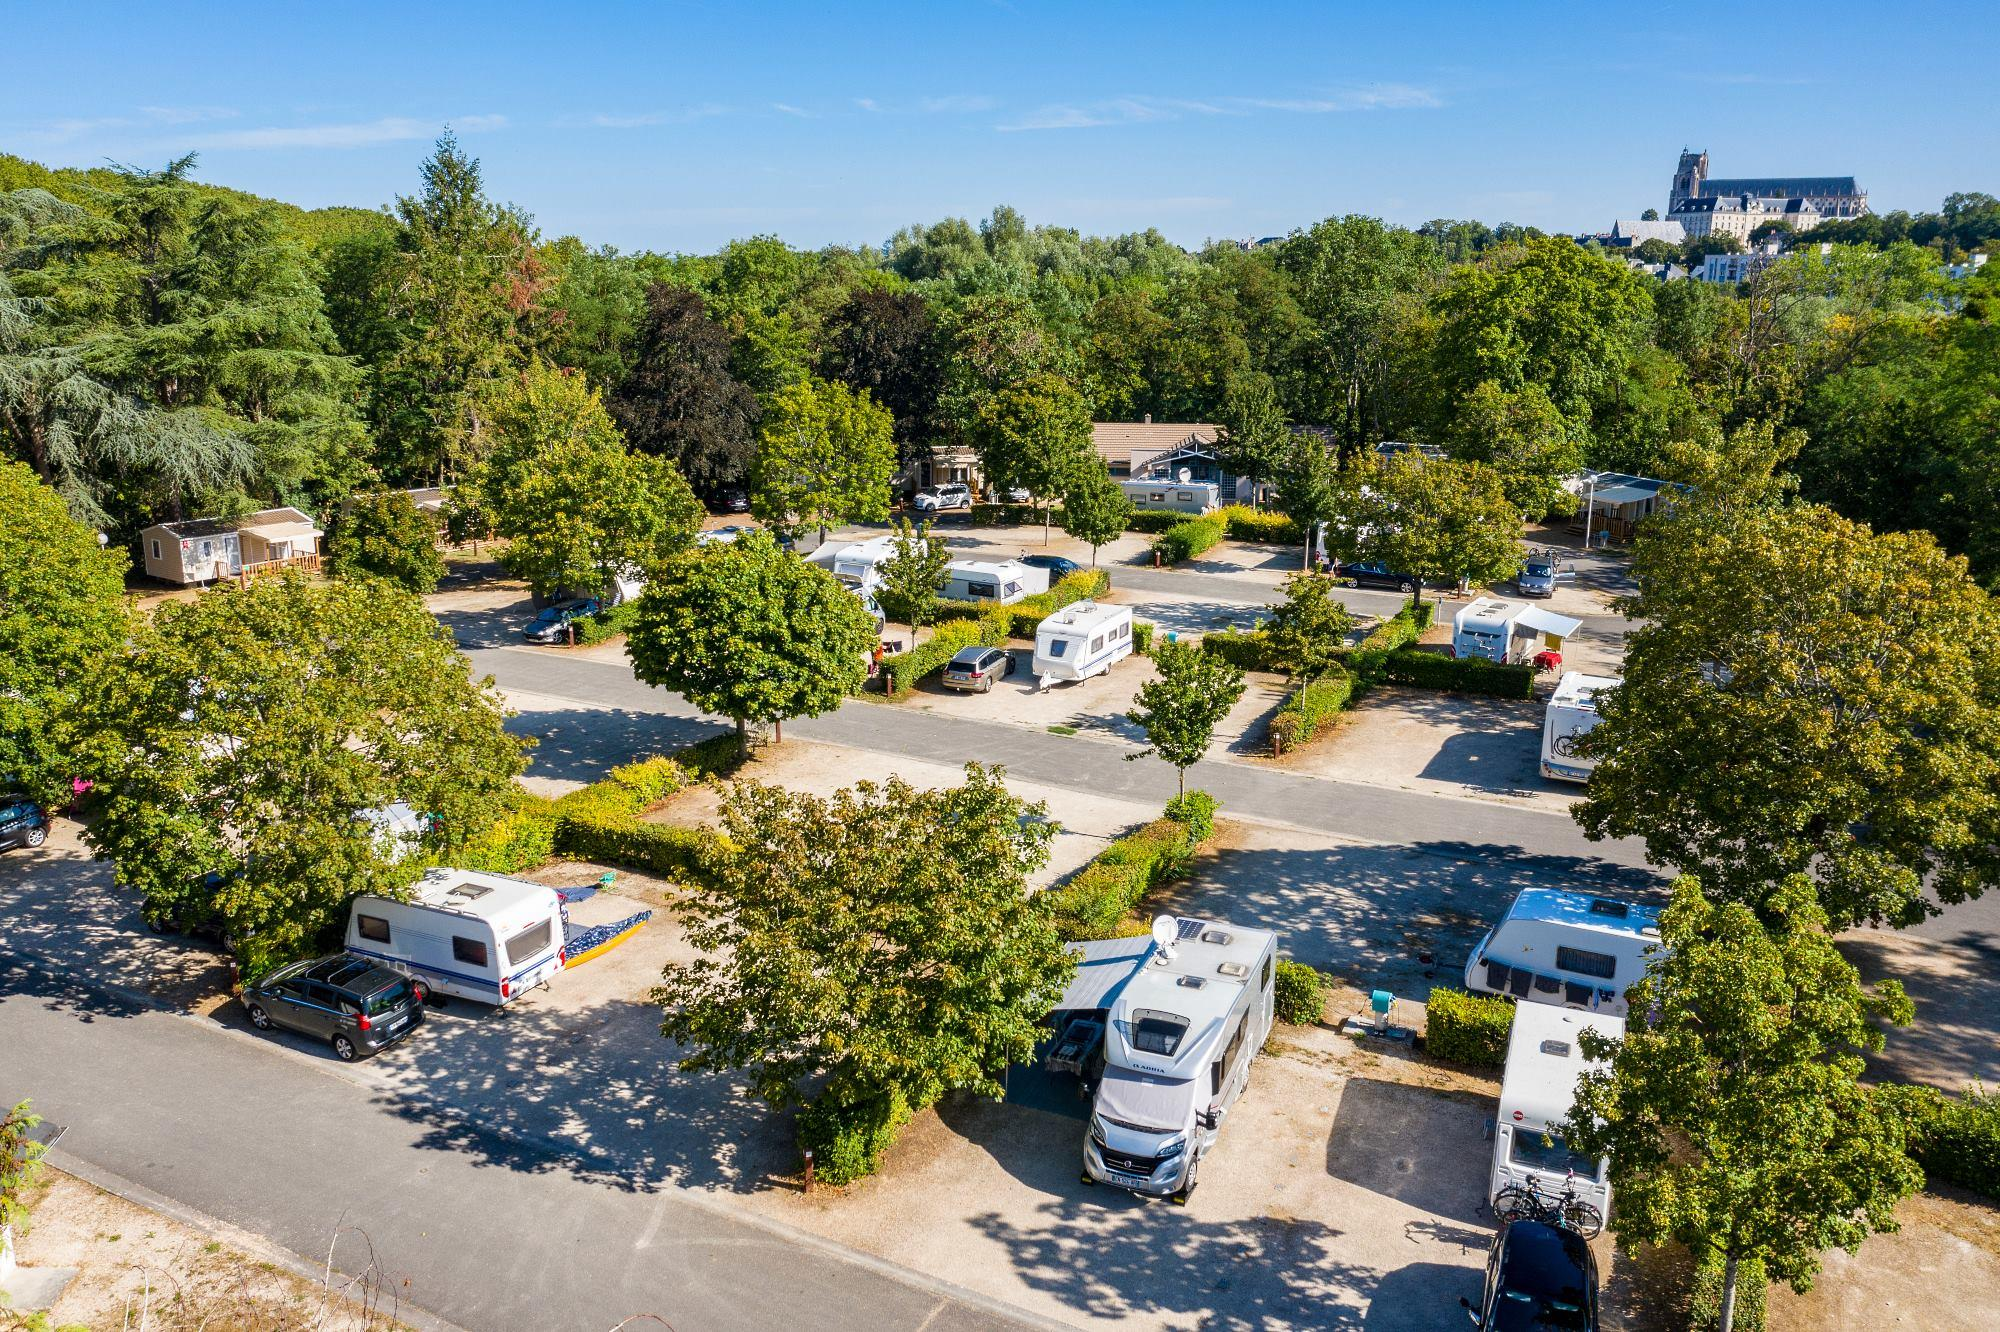 Établissement Camping Robinson - Bourges